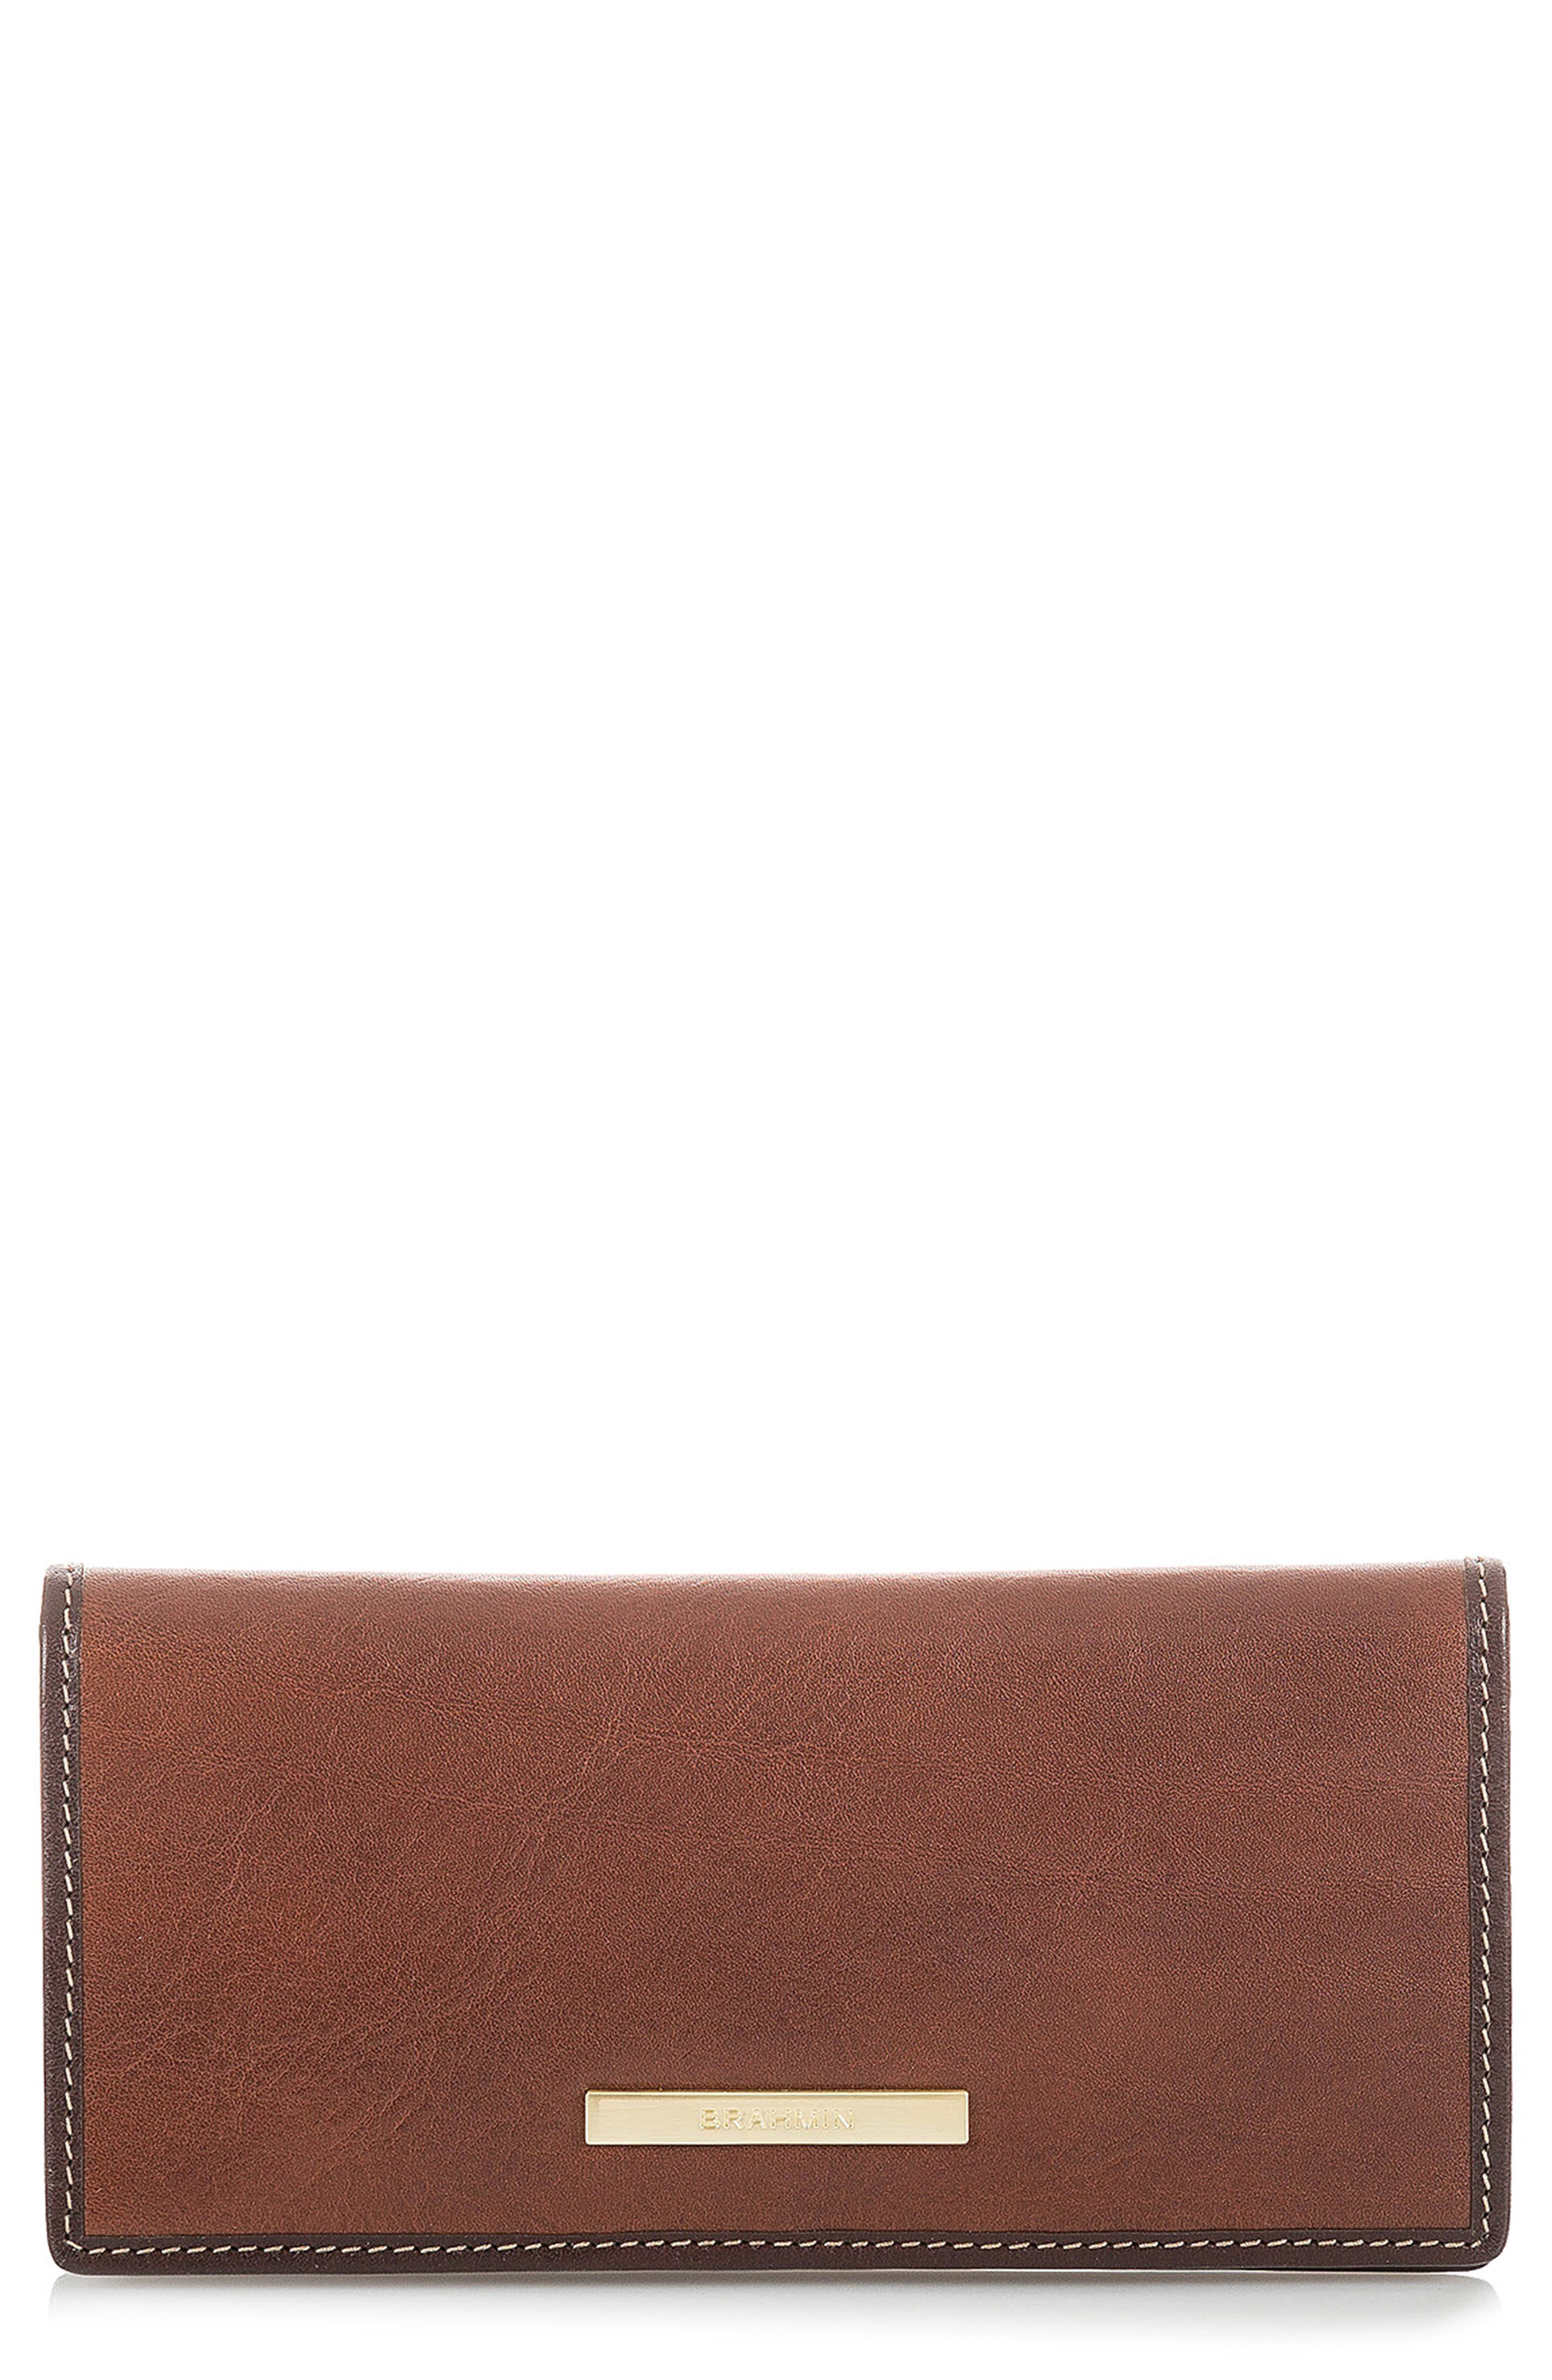 Ady Leather Wallet,                         Main,                         color, 200